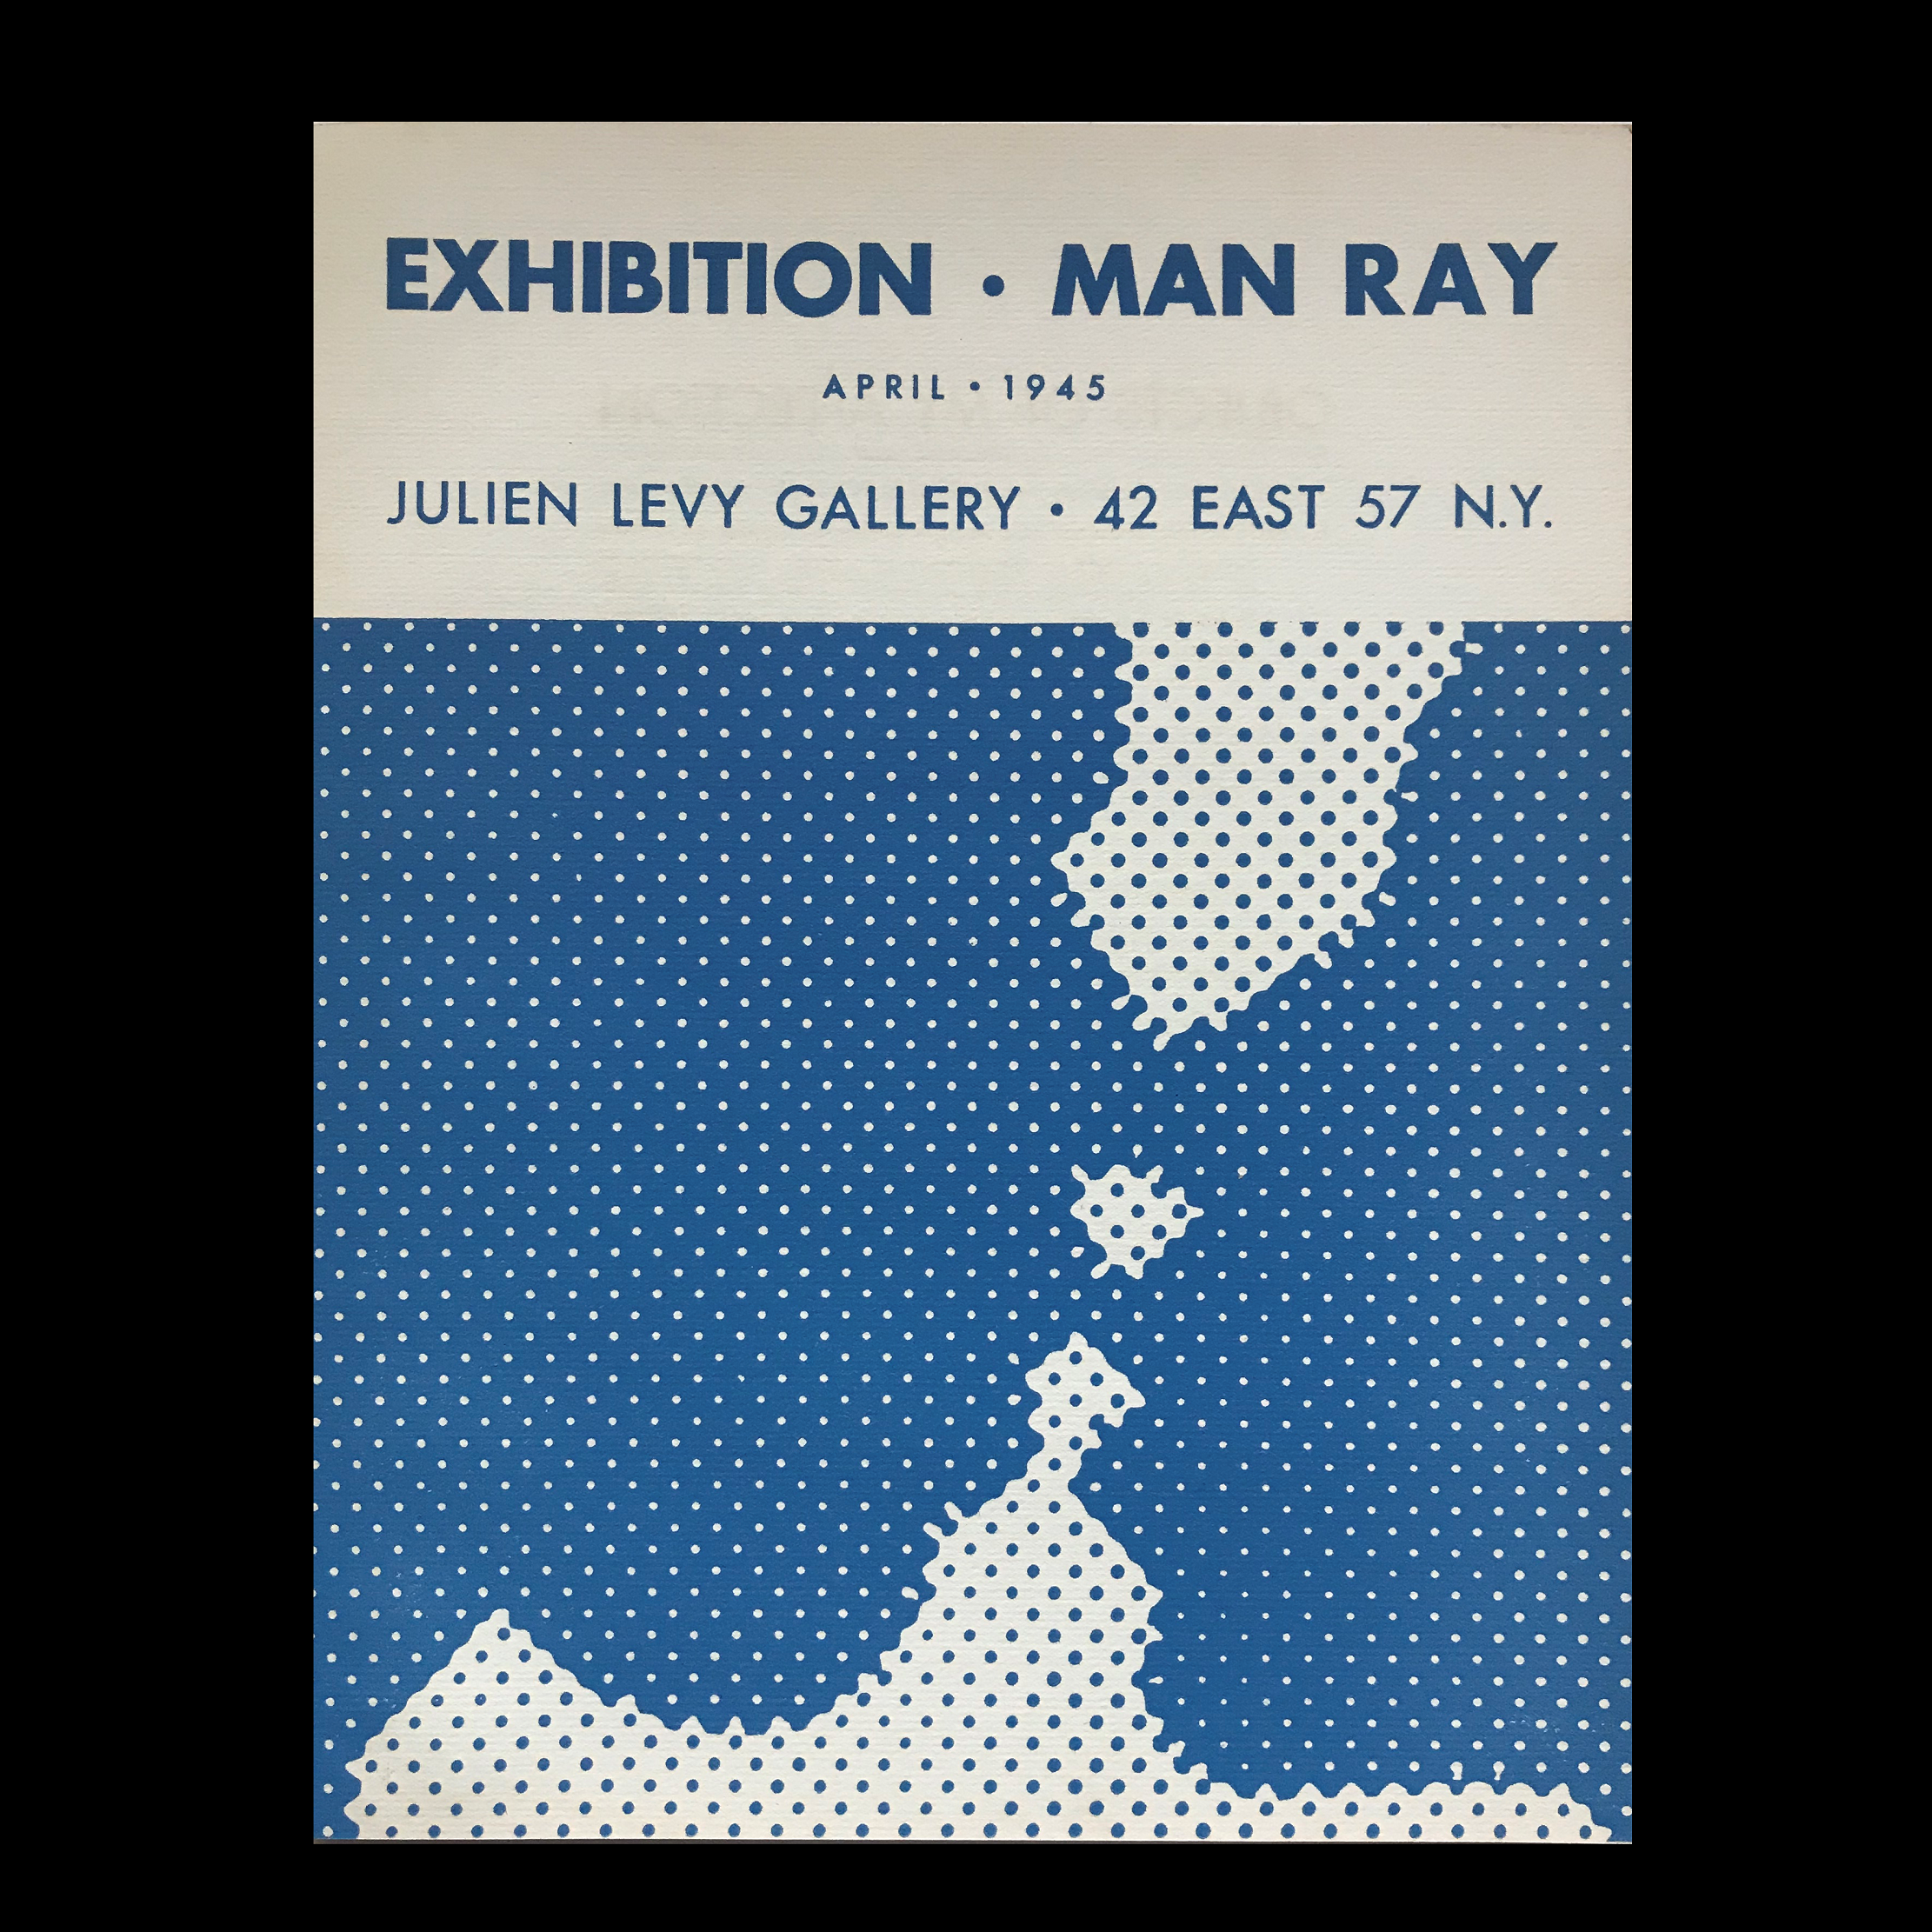 """Exhibition-Man Ray"",  1945, marcel DUCHAMP (cover design) Exhibit Catalog, Julien Levy Gallery NYC"